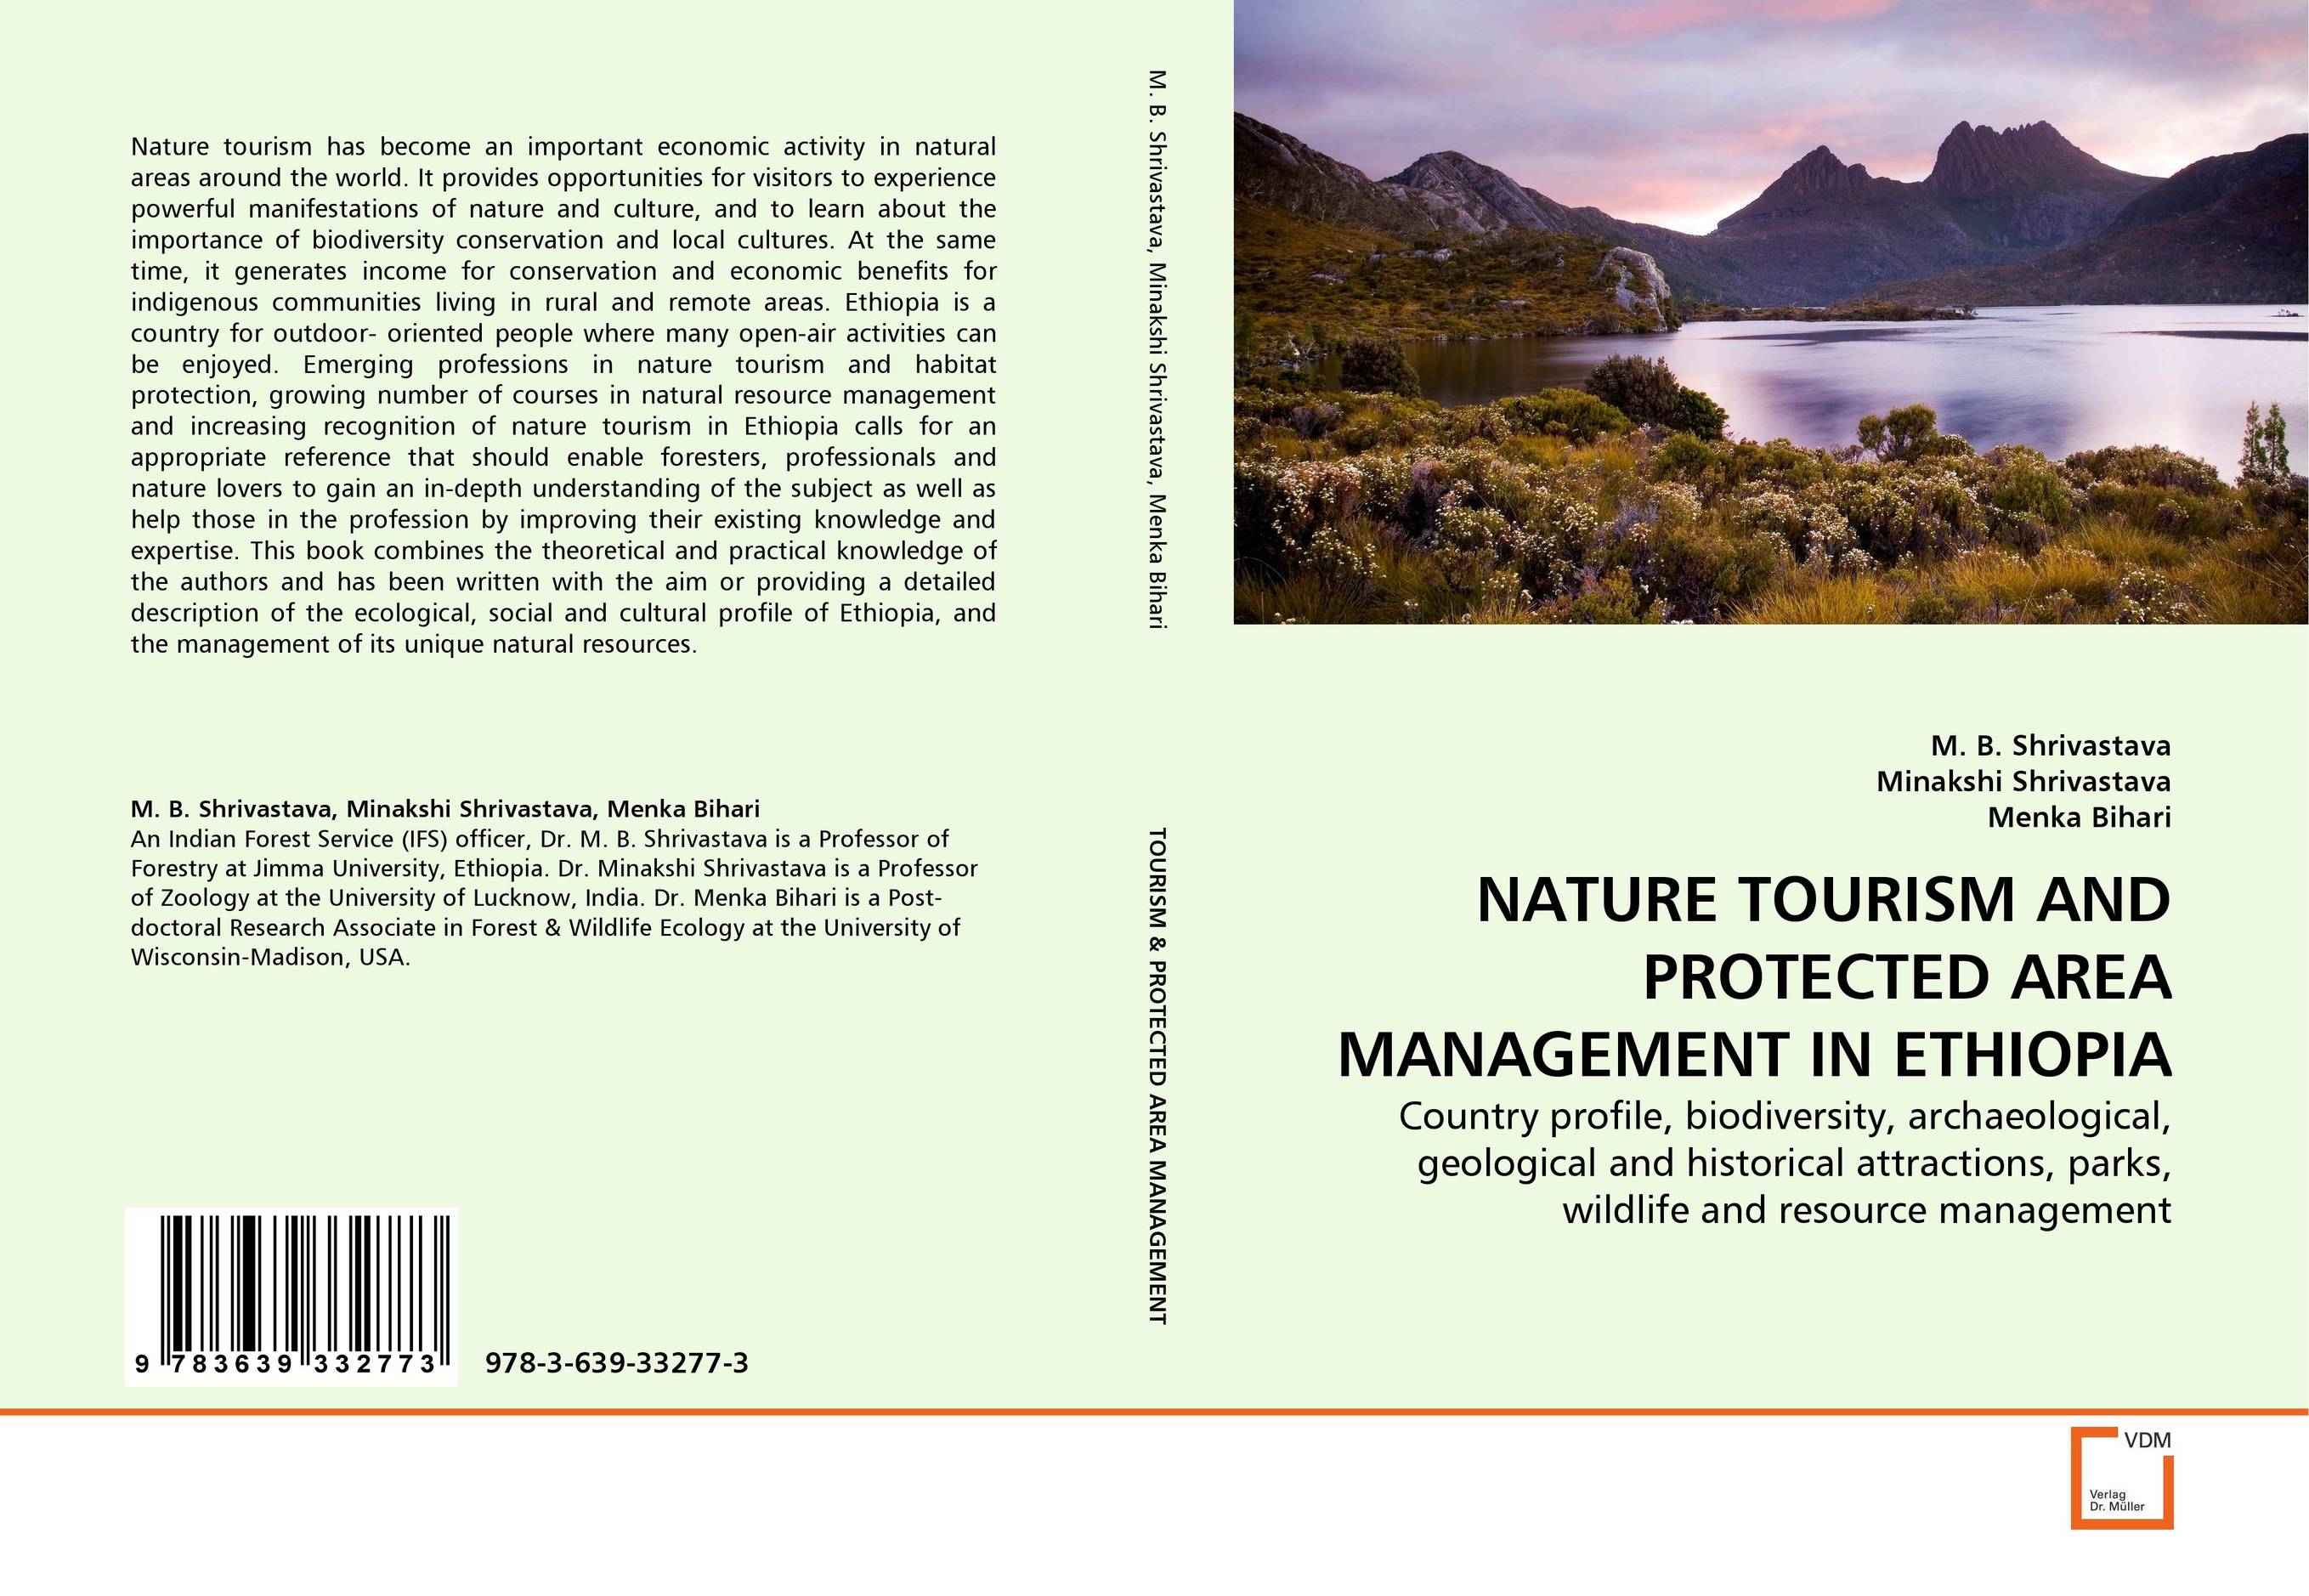 Фото NATURE TOURISM AND PROTECTED AREA MANAGEMENT IN ETHIOPIA cervical cancer in amhara region in ethiopia